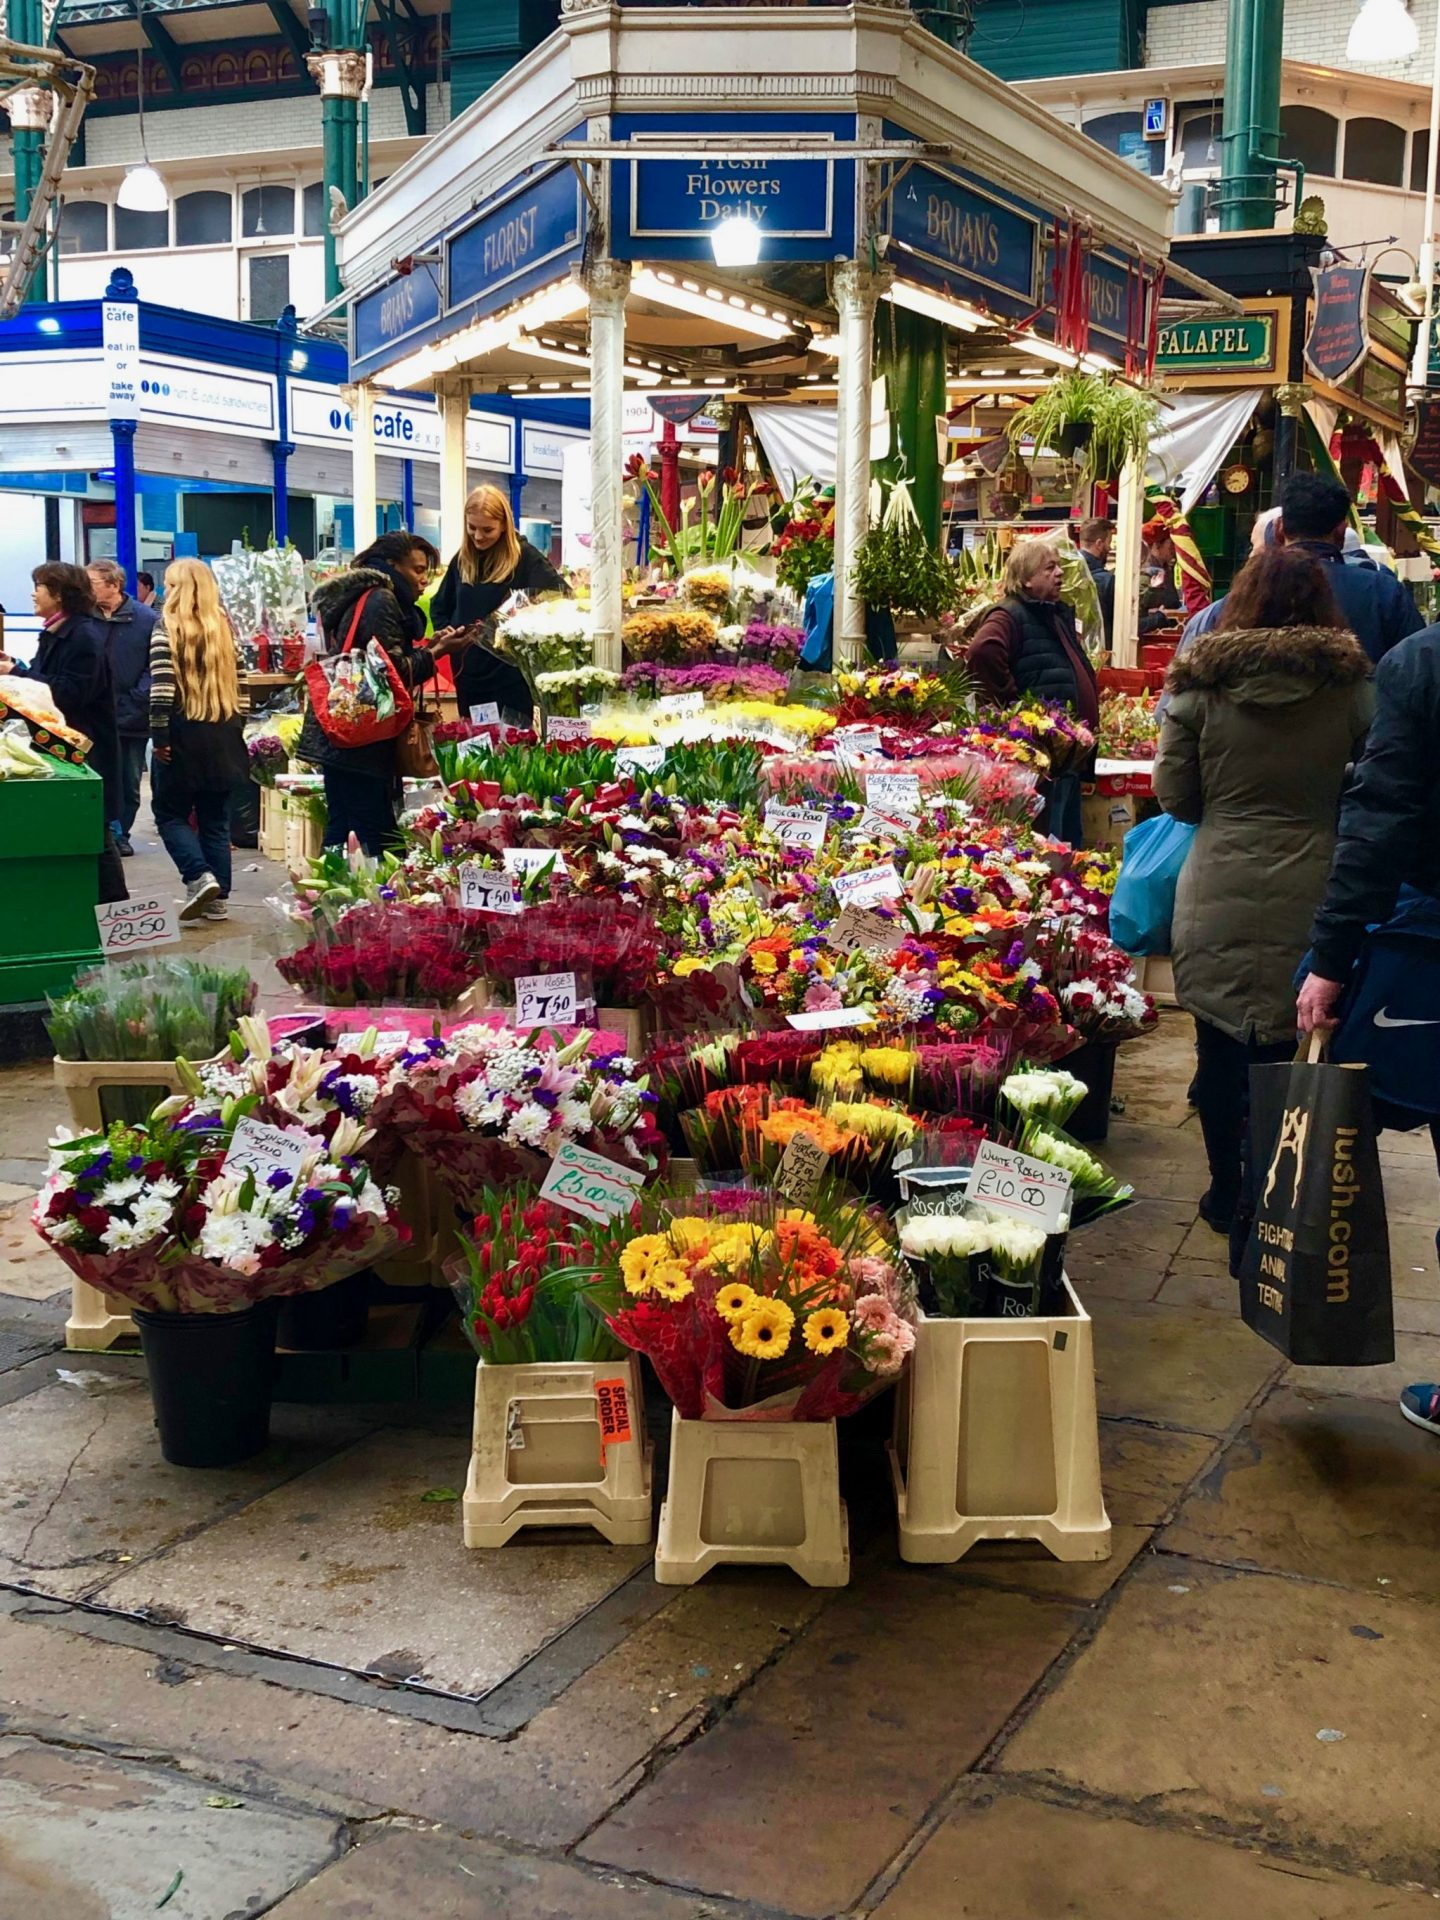 Leeds market: things to do in Leeds. A picture of a flower stall with shoppers browsing.